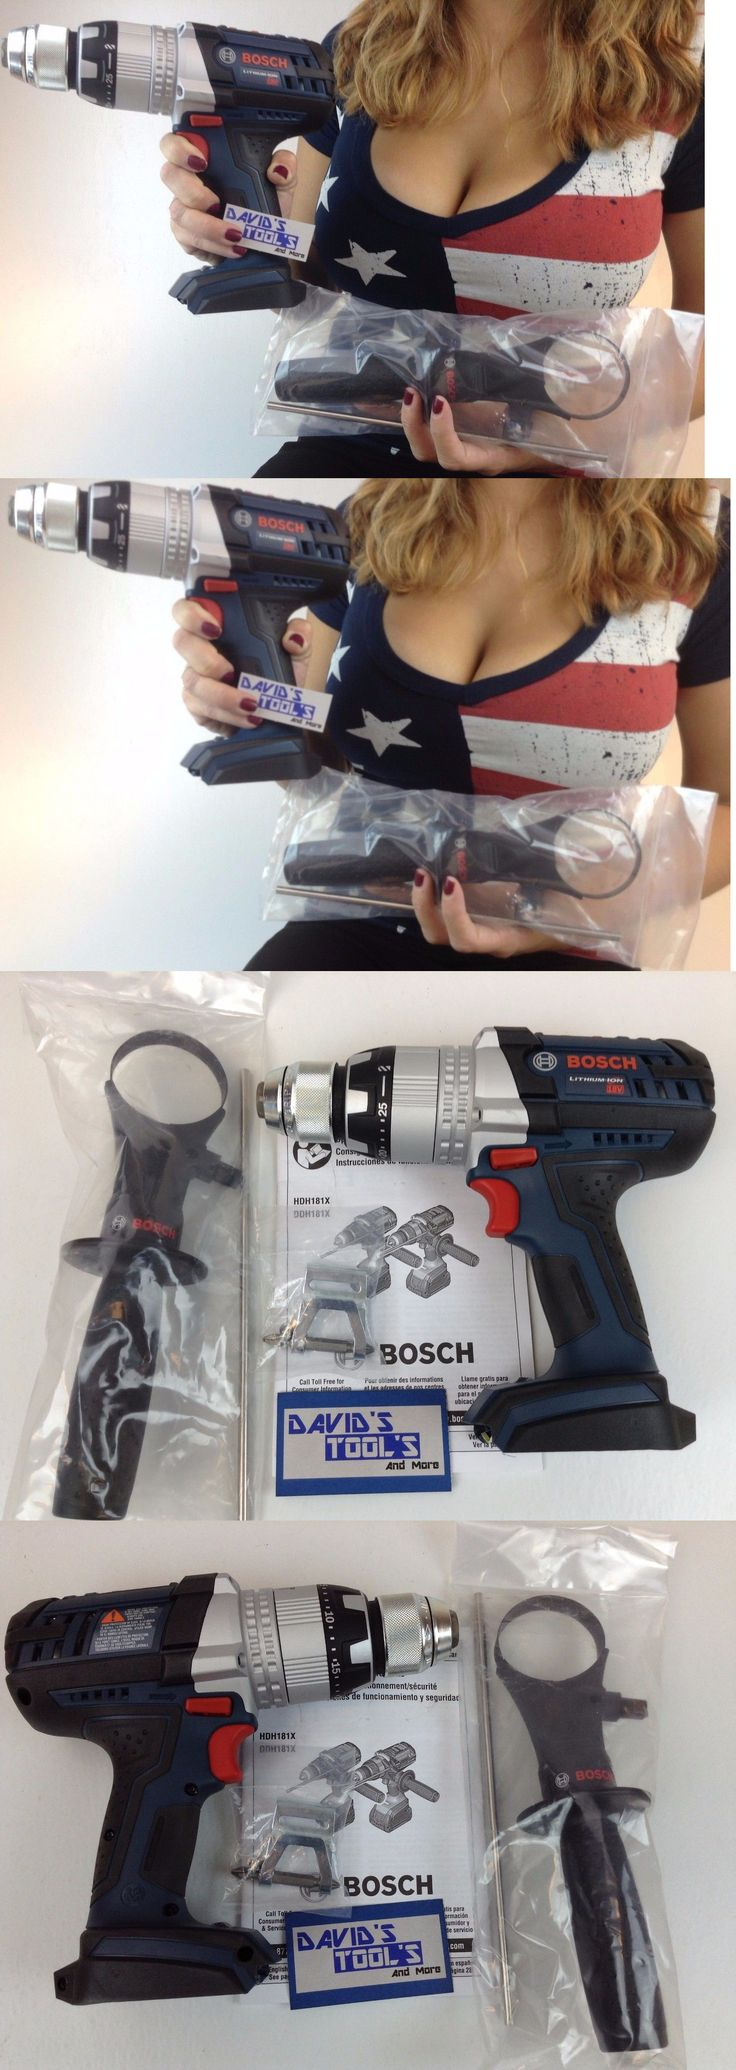 Cordless Drills 71302: New Bosch Hdh181xb 18V Li-Ion 1 2 Cordless Hammer Drill With Active Response -> BUY IT NOW ONLY: $115.55 on eBay!